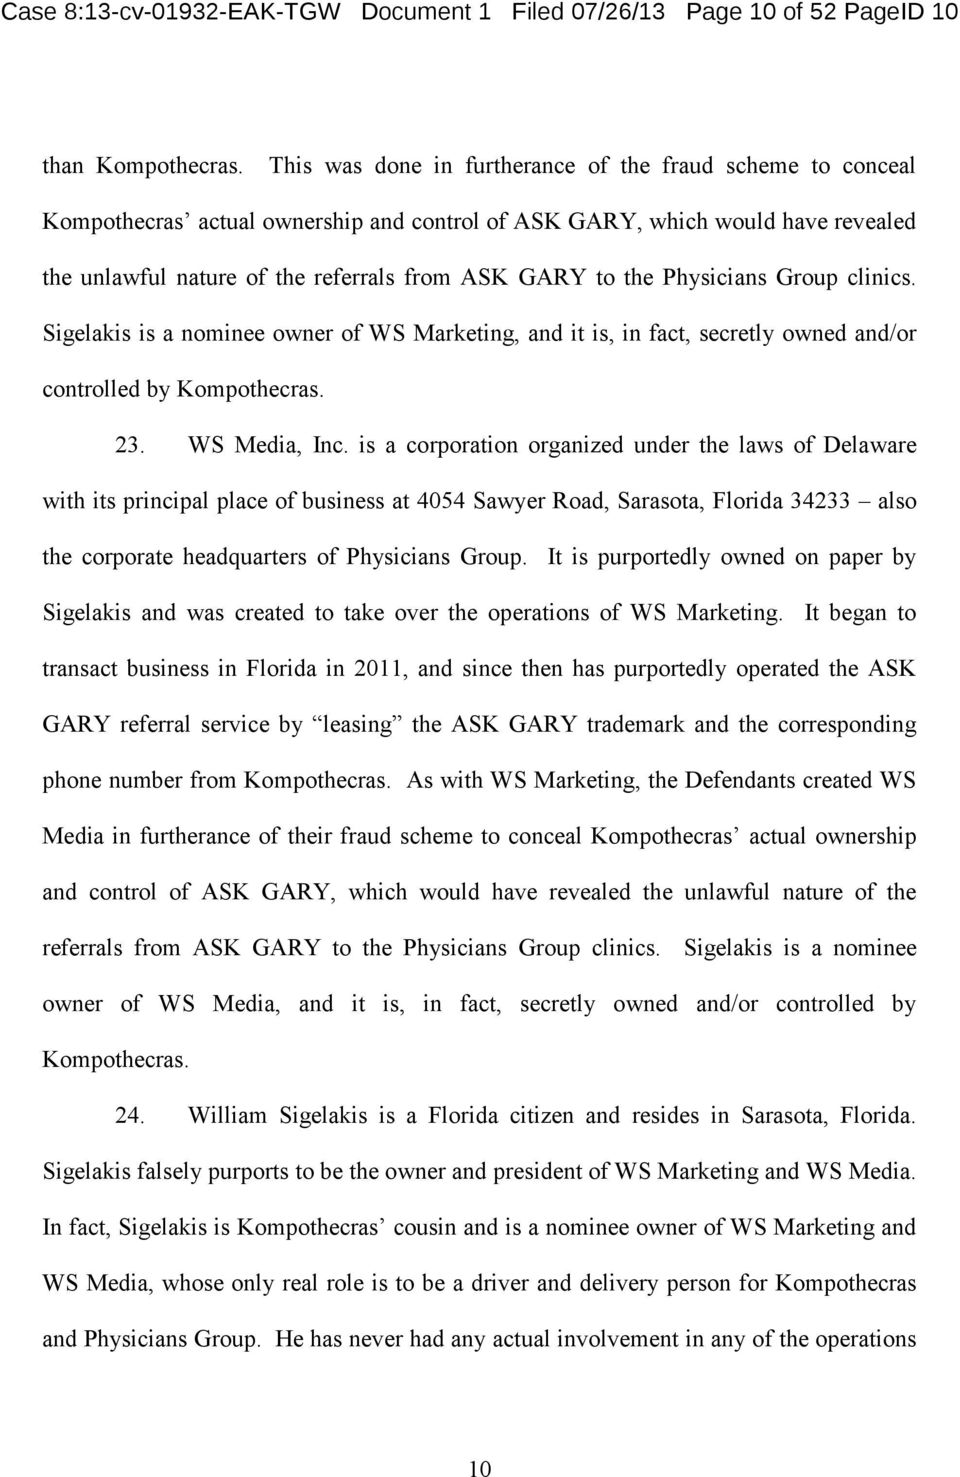 This was done in furtherance of the fraud scheme to conceal Kompothecras actual ownership and control of ASK GARY, which would have revealed the unlawful nature of the referrals from ASK GARY to the